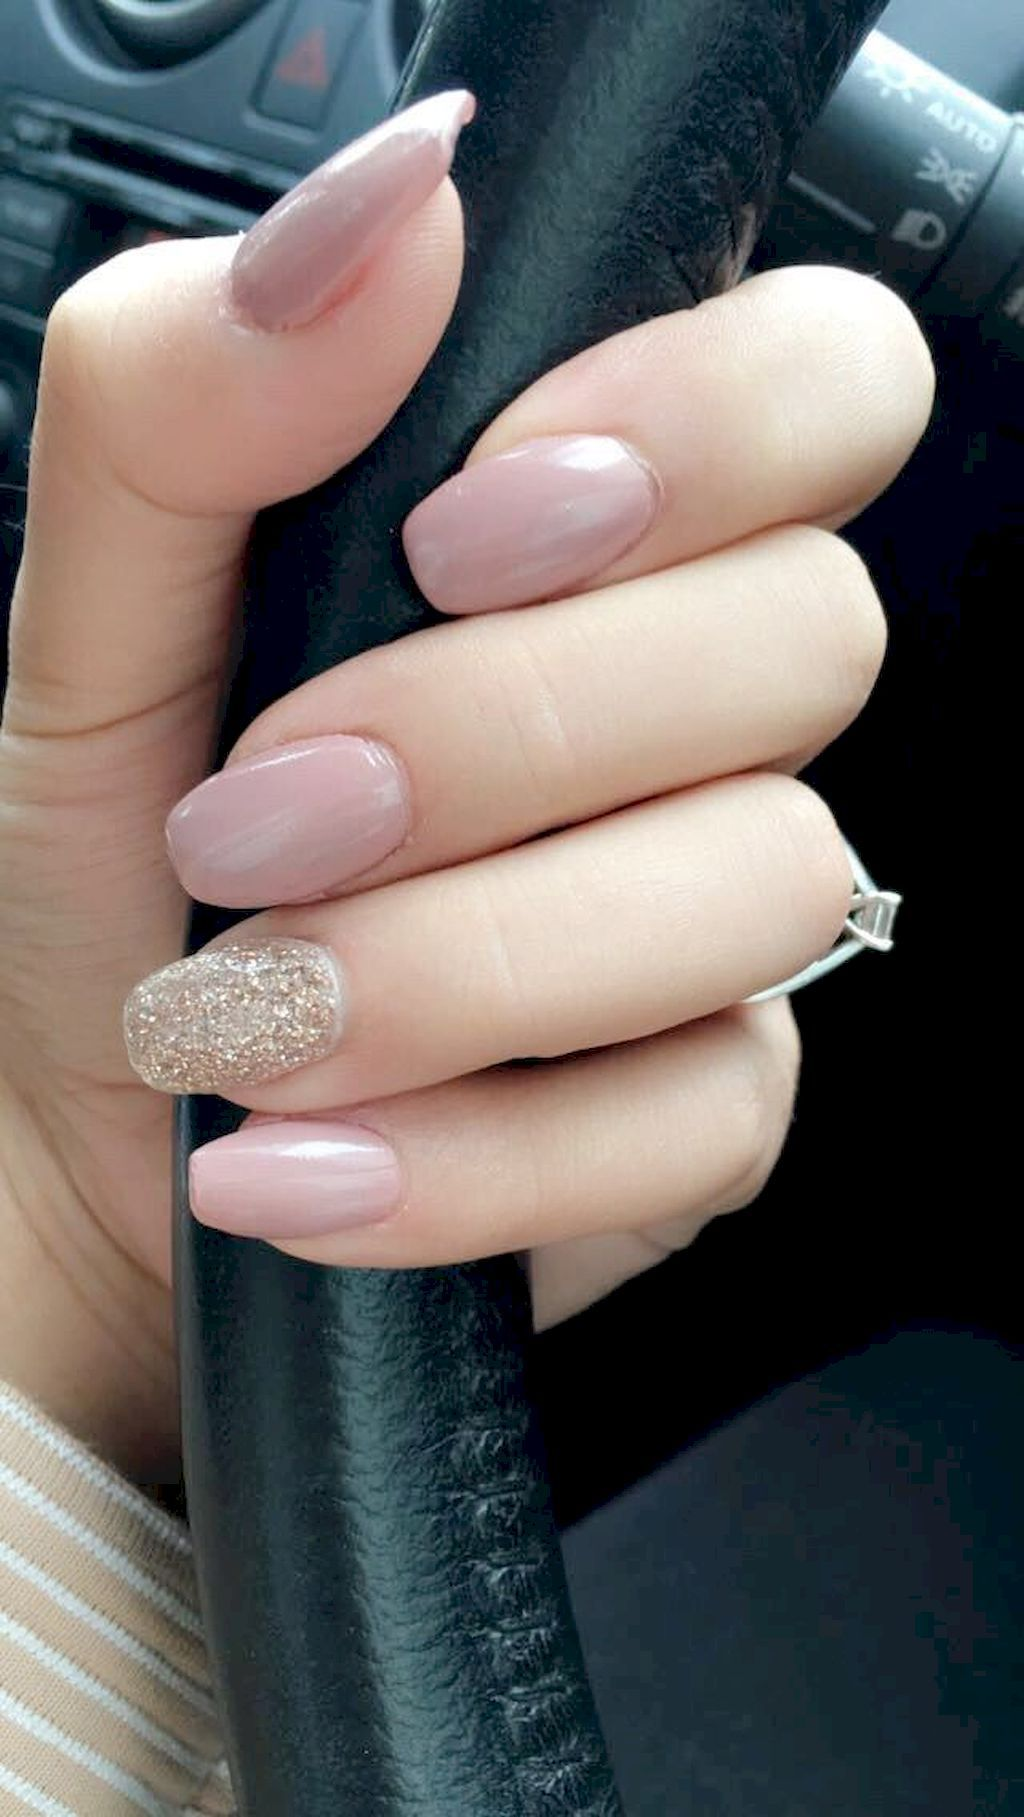 01 New Acrylic Nail Designs Ideas to Try This Year | Pinterest ...